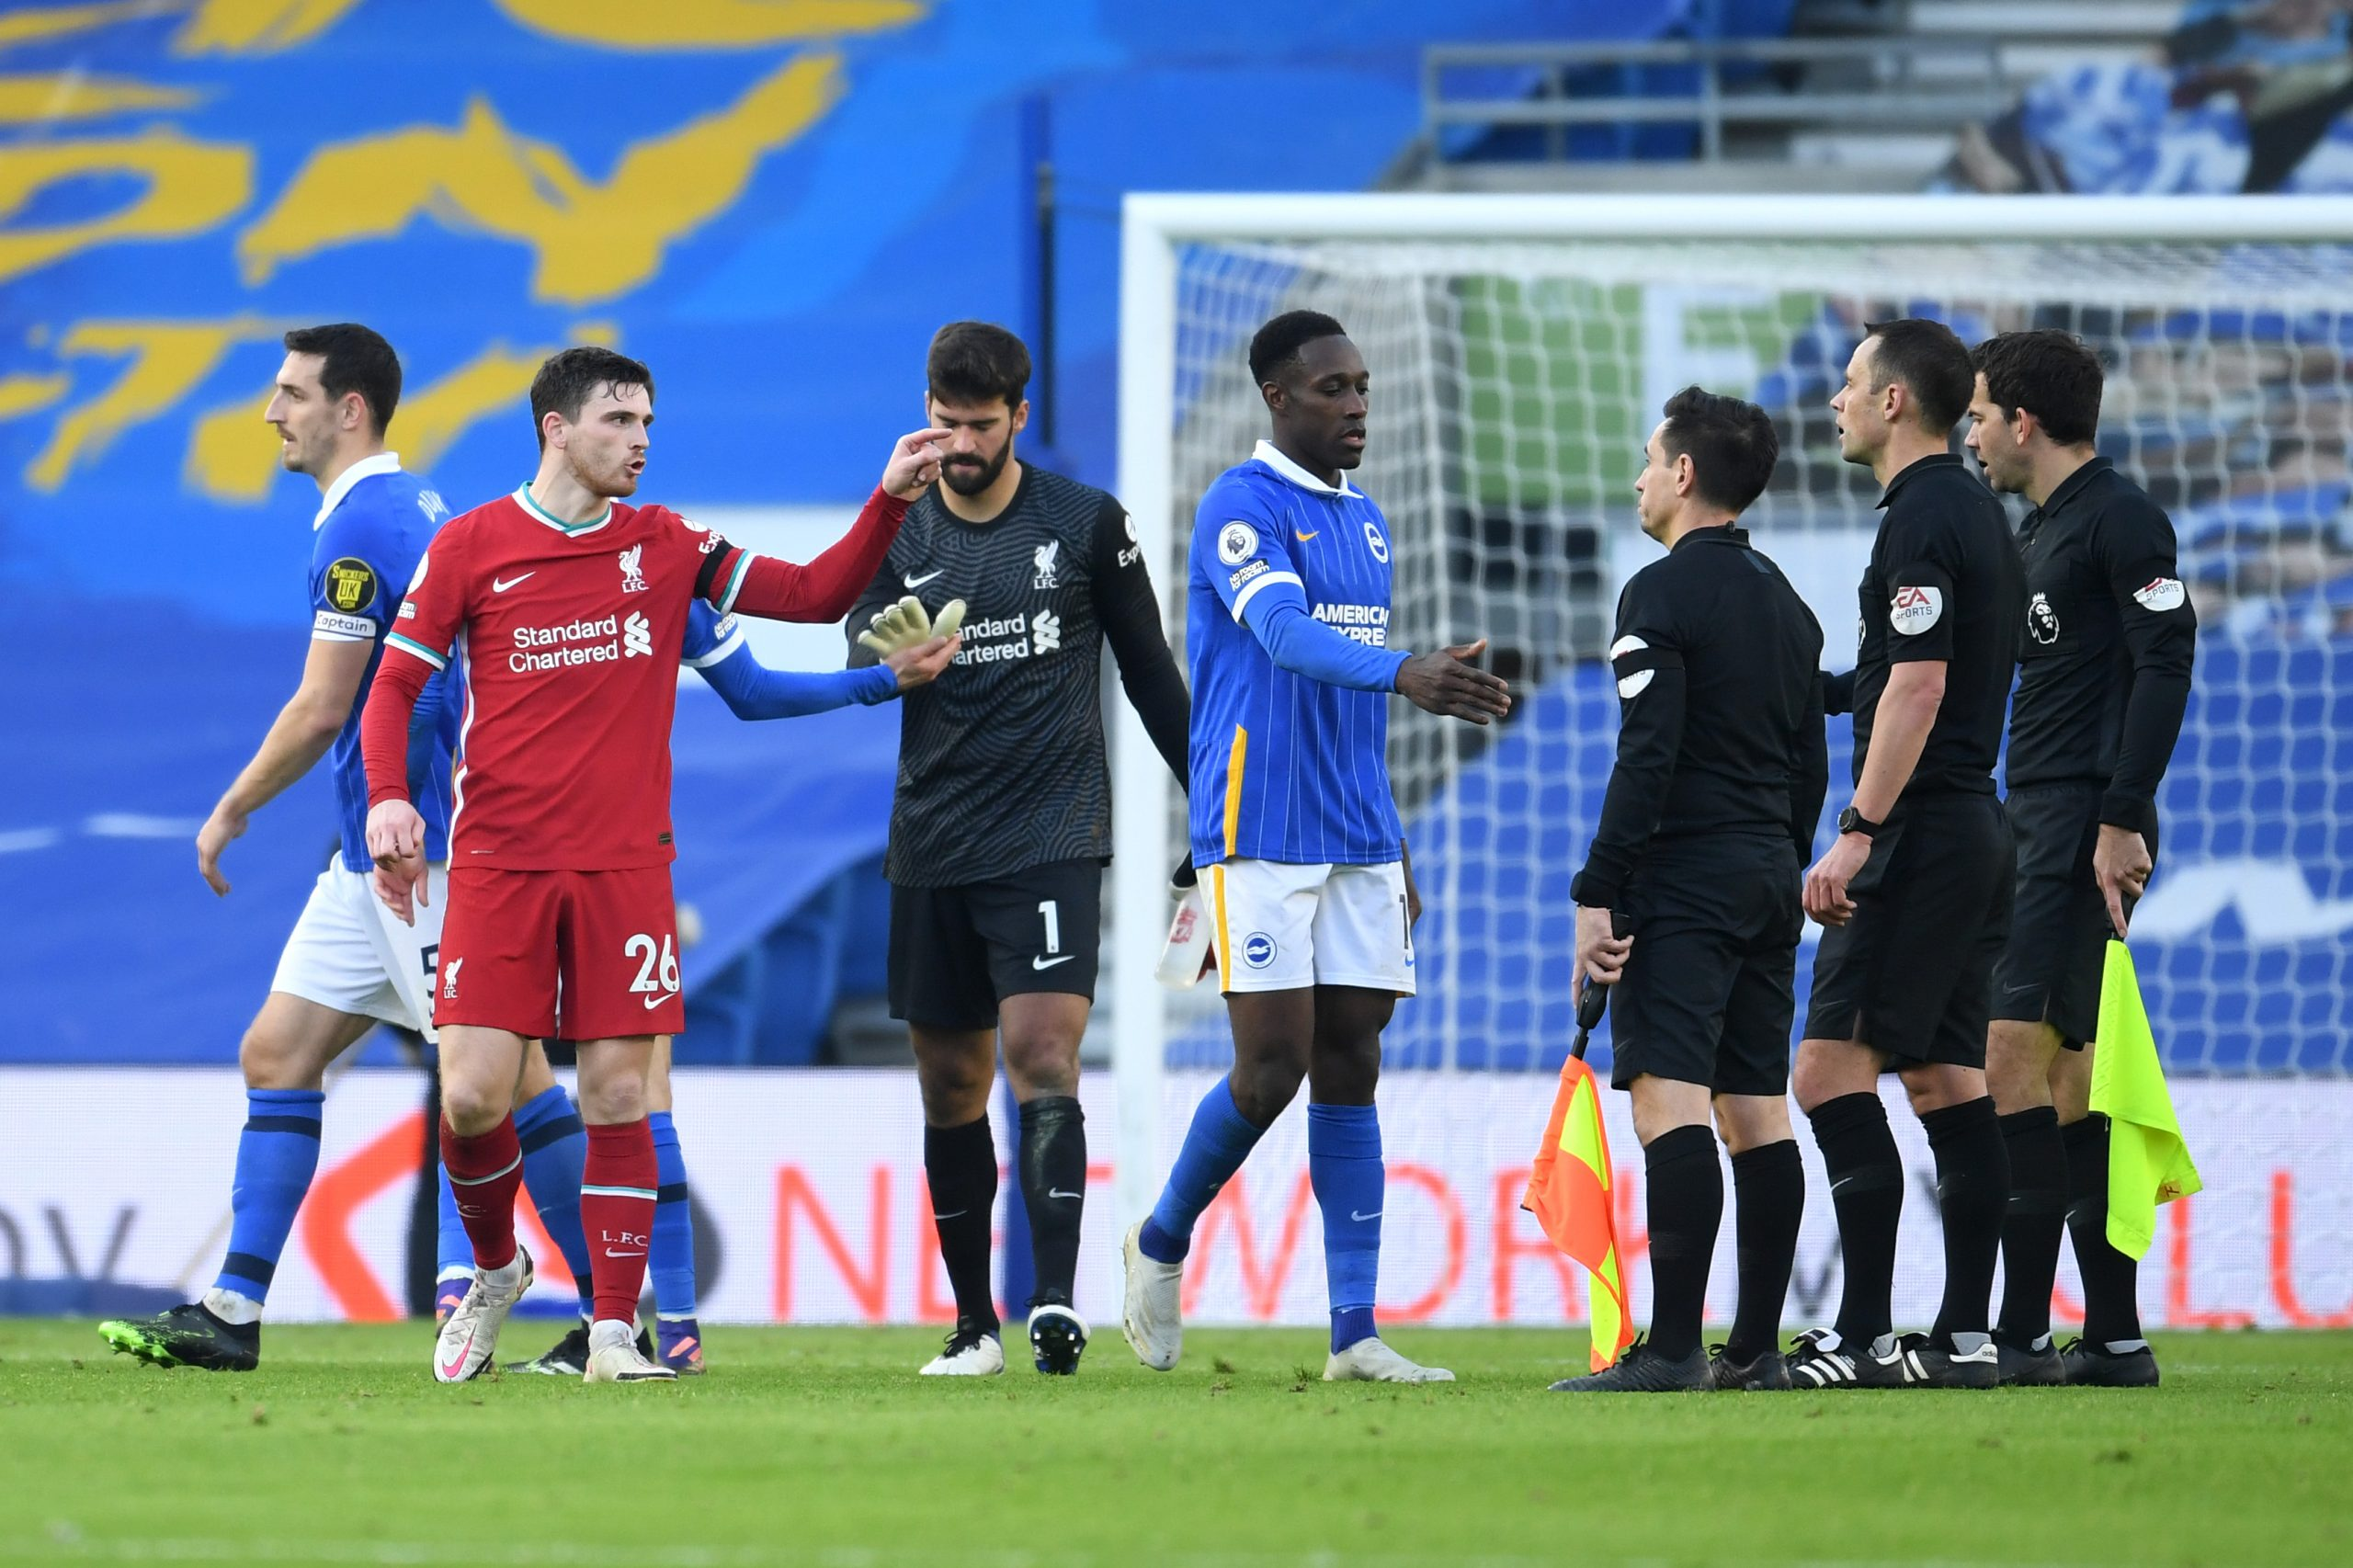 Liverpool players surround Stuart Atwell after the VAR awarded Brighton and Hove Albion a penalty in the closing stages of the game. (GETTY Images)